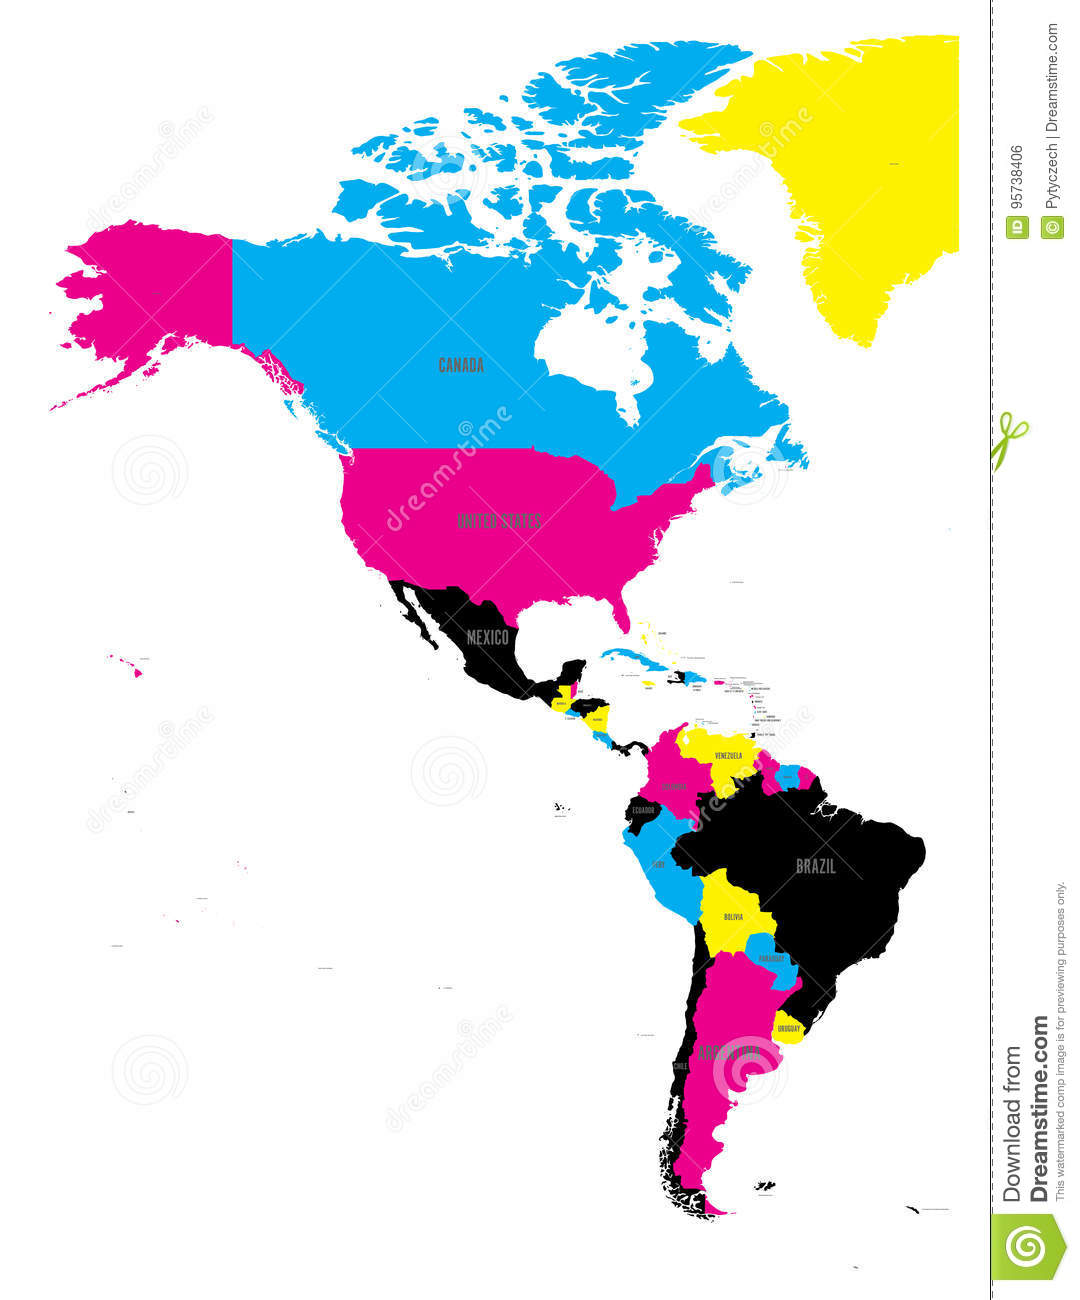 Political Map Of Americas In CMYK Colors On White Background - World map country labels